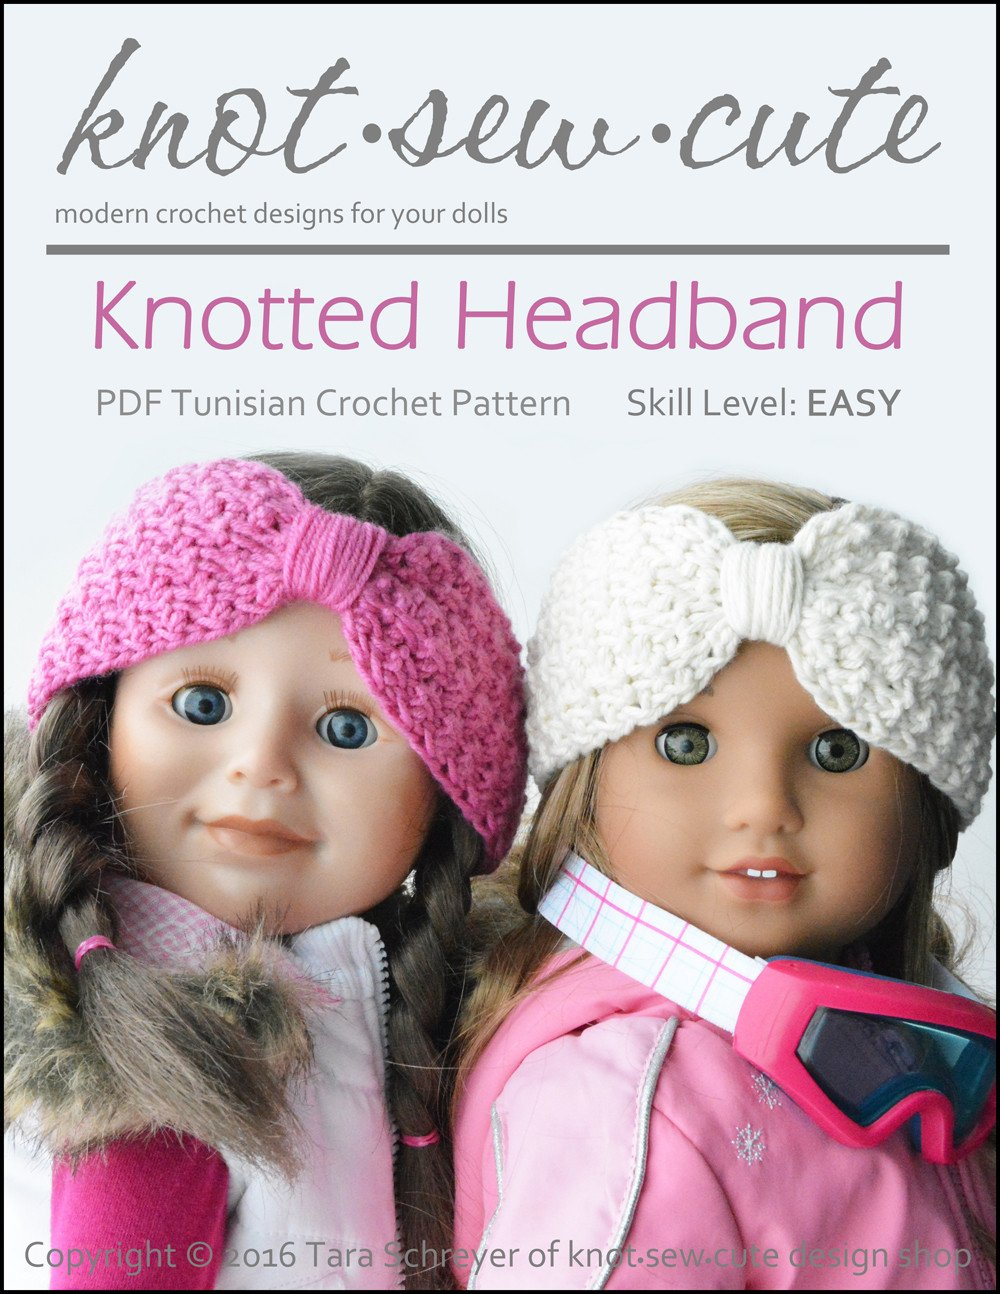 Knot-Sew-Cute Knotted Headband Doll Clothes Tunisian Crochet Pattern ...